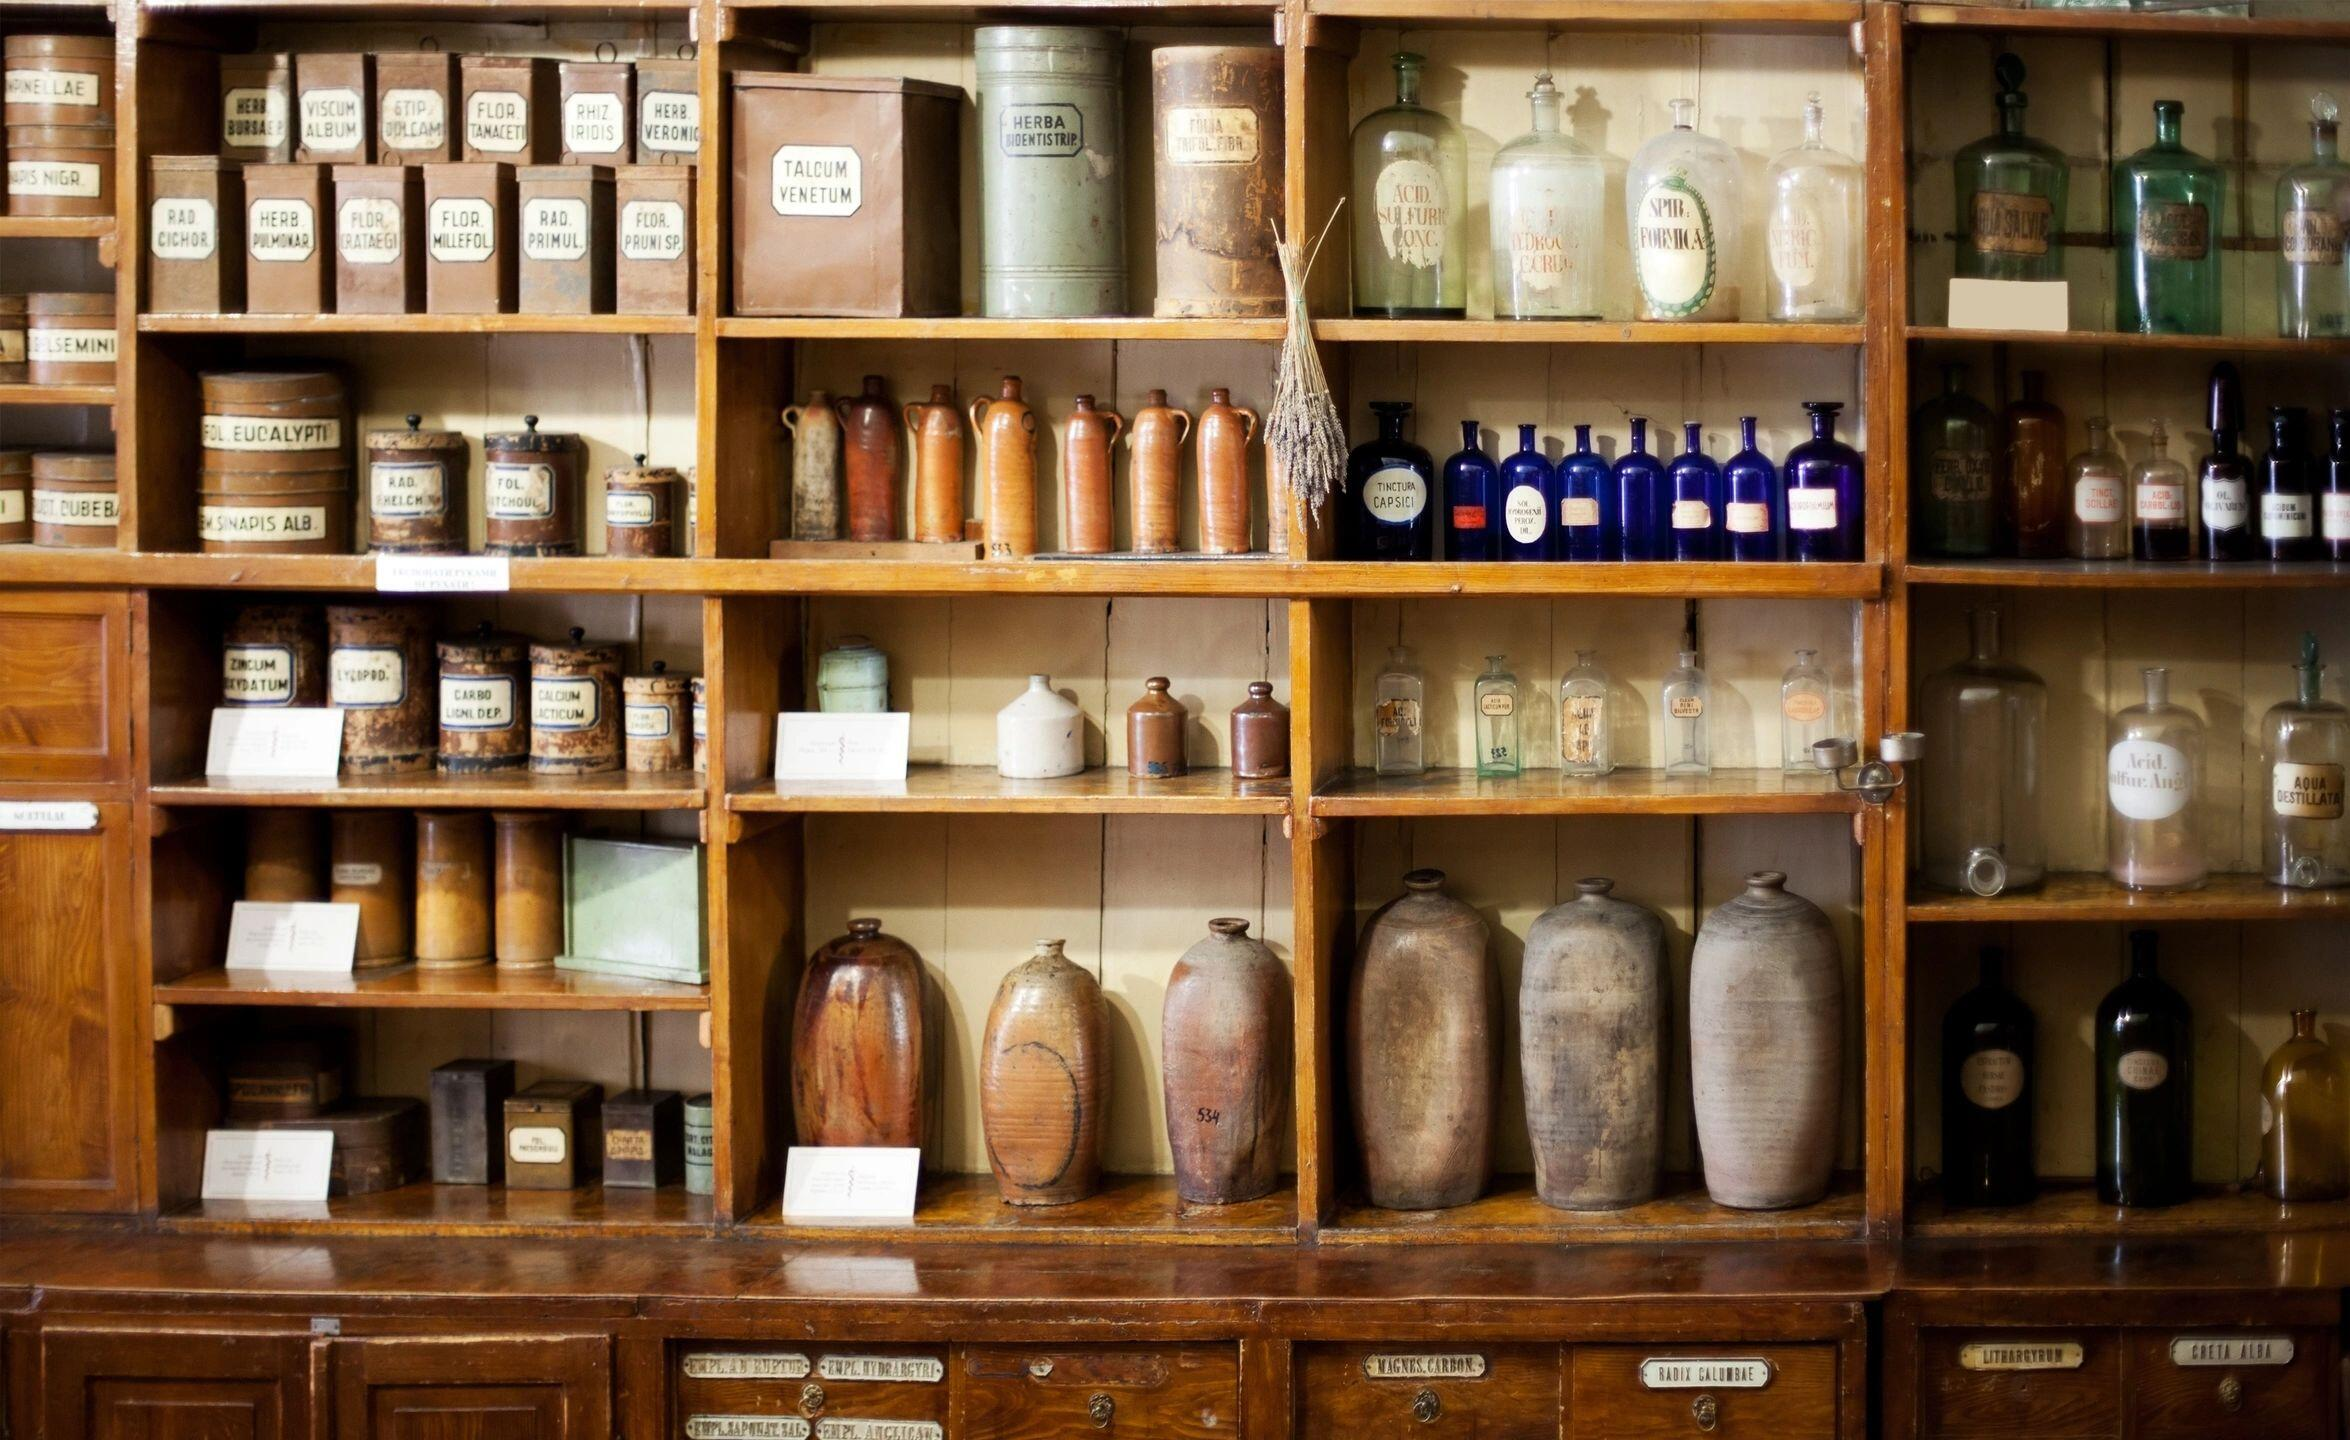 An Organized Medicine Cabinet: How Can I Organize My Medicine Cabinet?